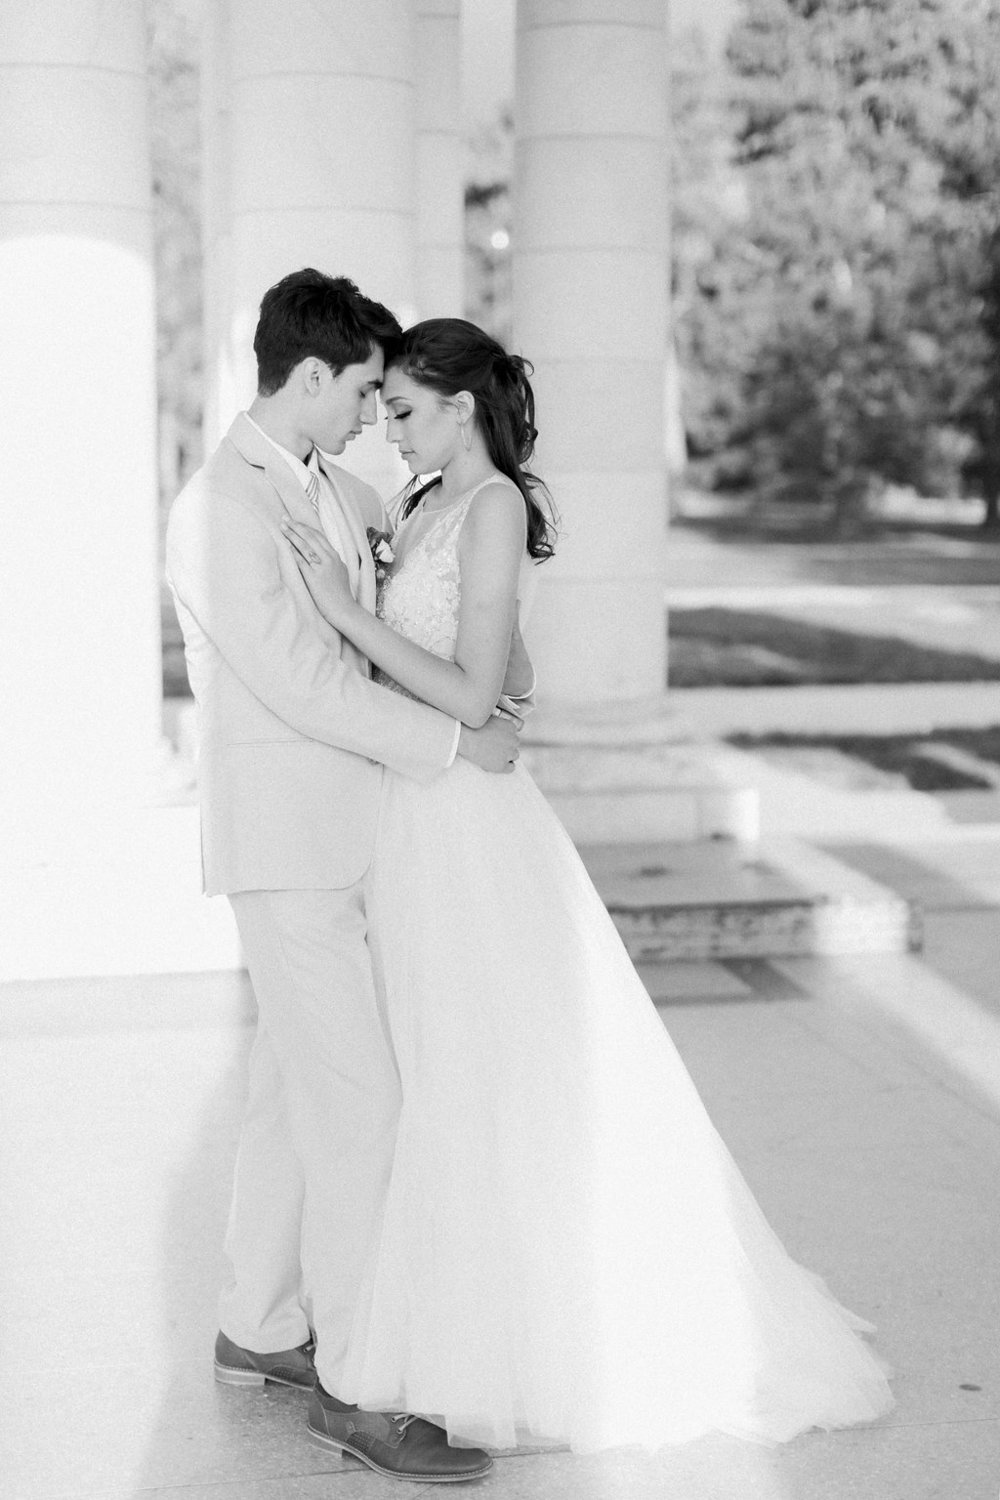 Bride & Groom share a special moment